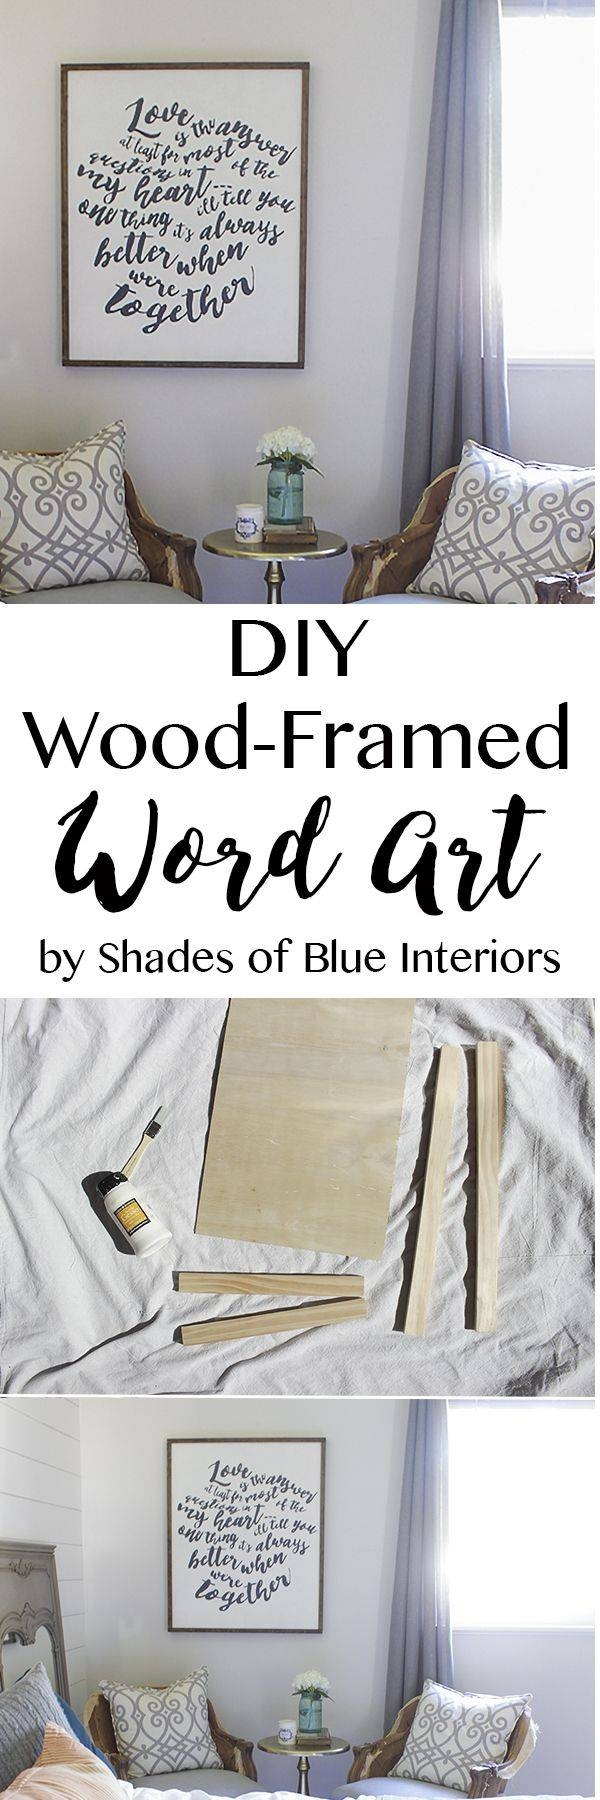 25+ Unique Diy Plywood Art Ideas On Pinterest | Wood Laser Ideas With Regard To Most Popular Wooden Words Wall Art (View 1 of 30)